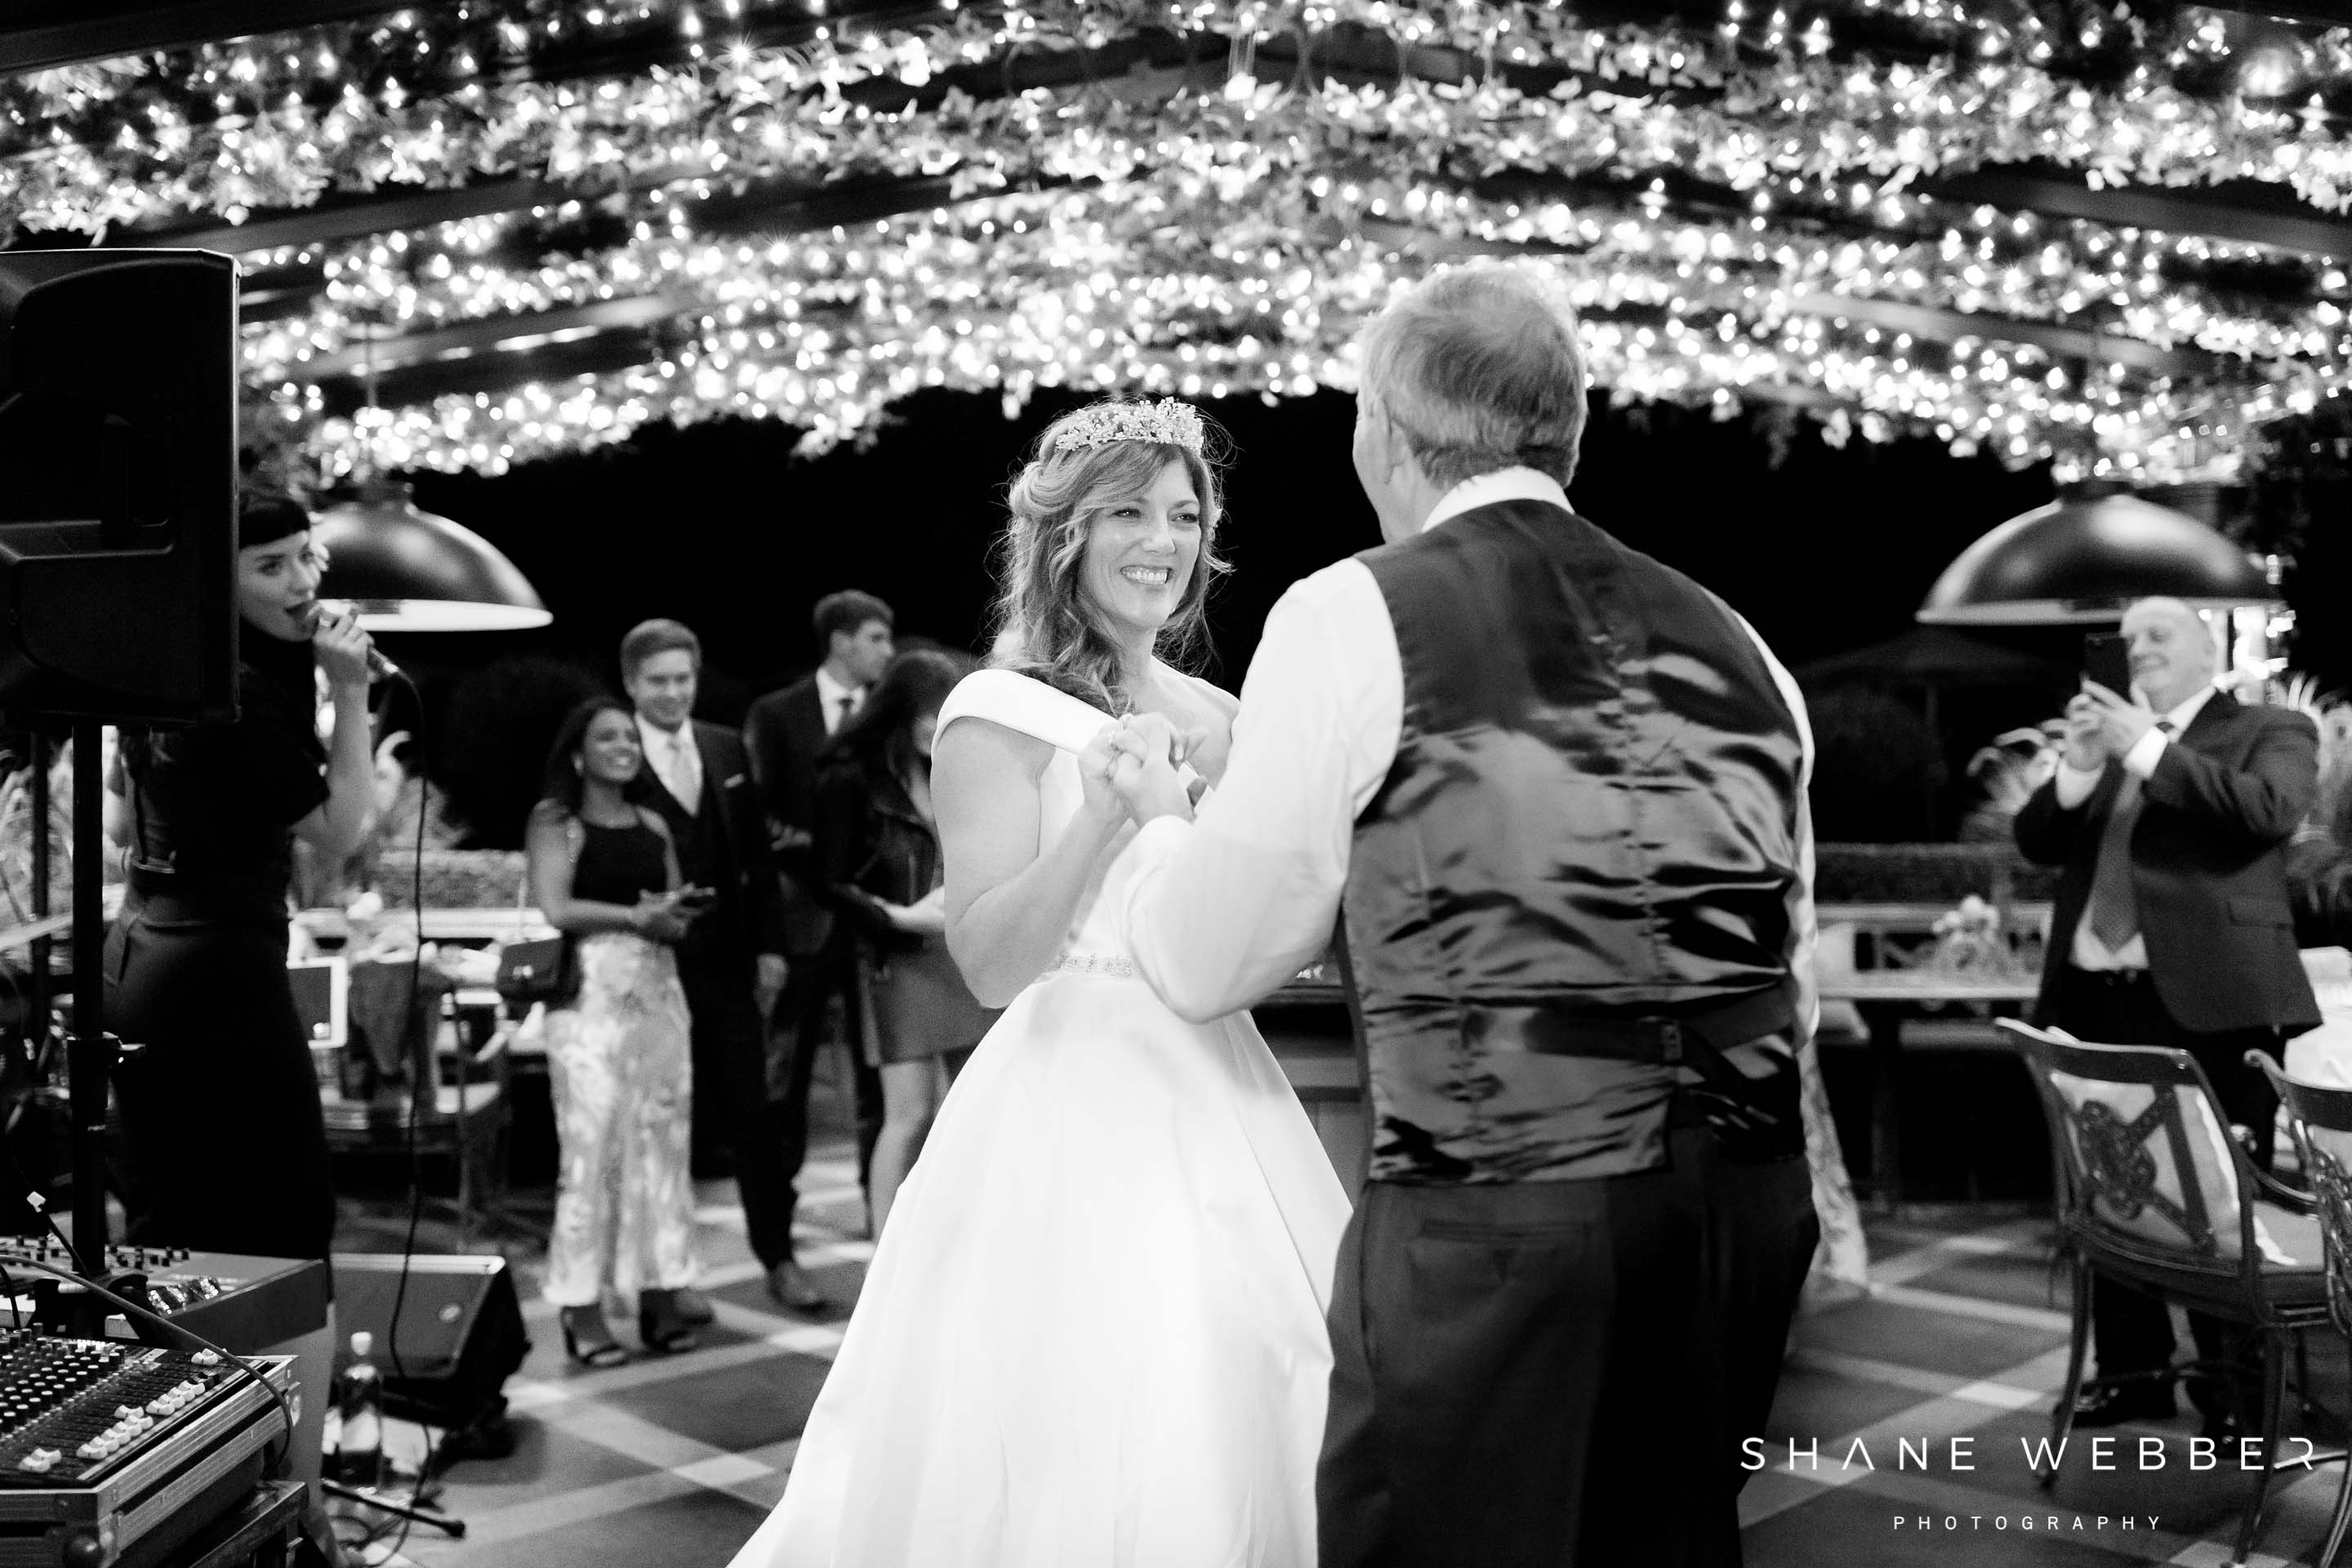 Outdoor first dance in the courtyard at Grantley Hall